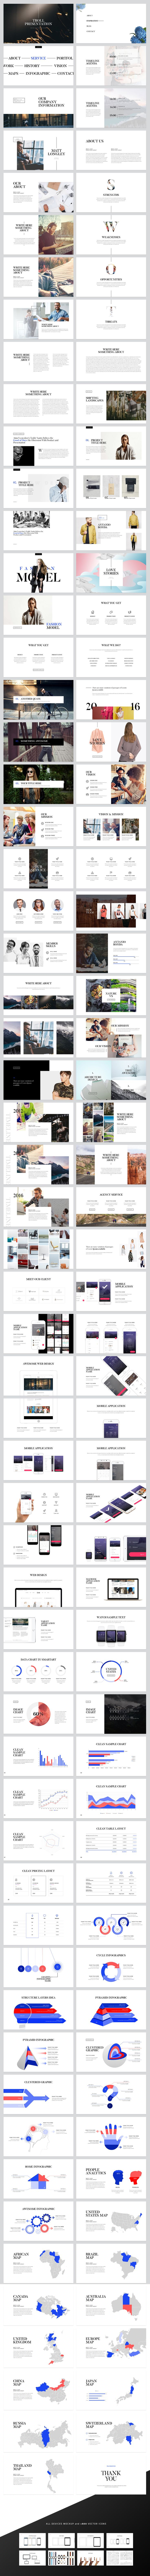 TROLL – Powerpoint & Keynote Template